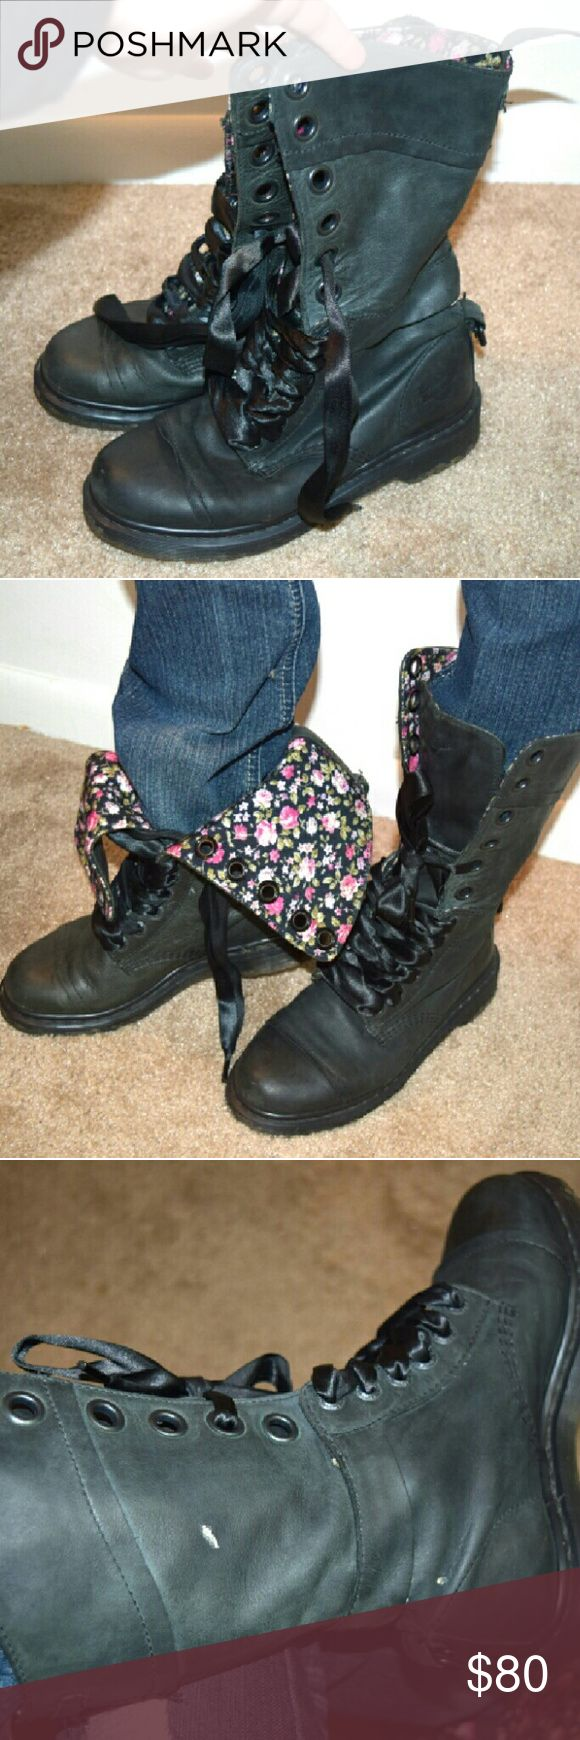 Selling this Dr. Marten's Floral Moto Boots on Poshmark! My username is: peacemongers. #shopmycloset #poshmark #fashion #shopping #style #forsale #Dr. Martens #Shoes